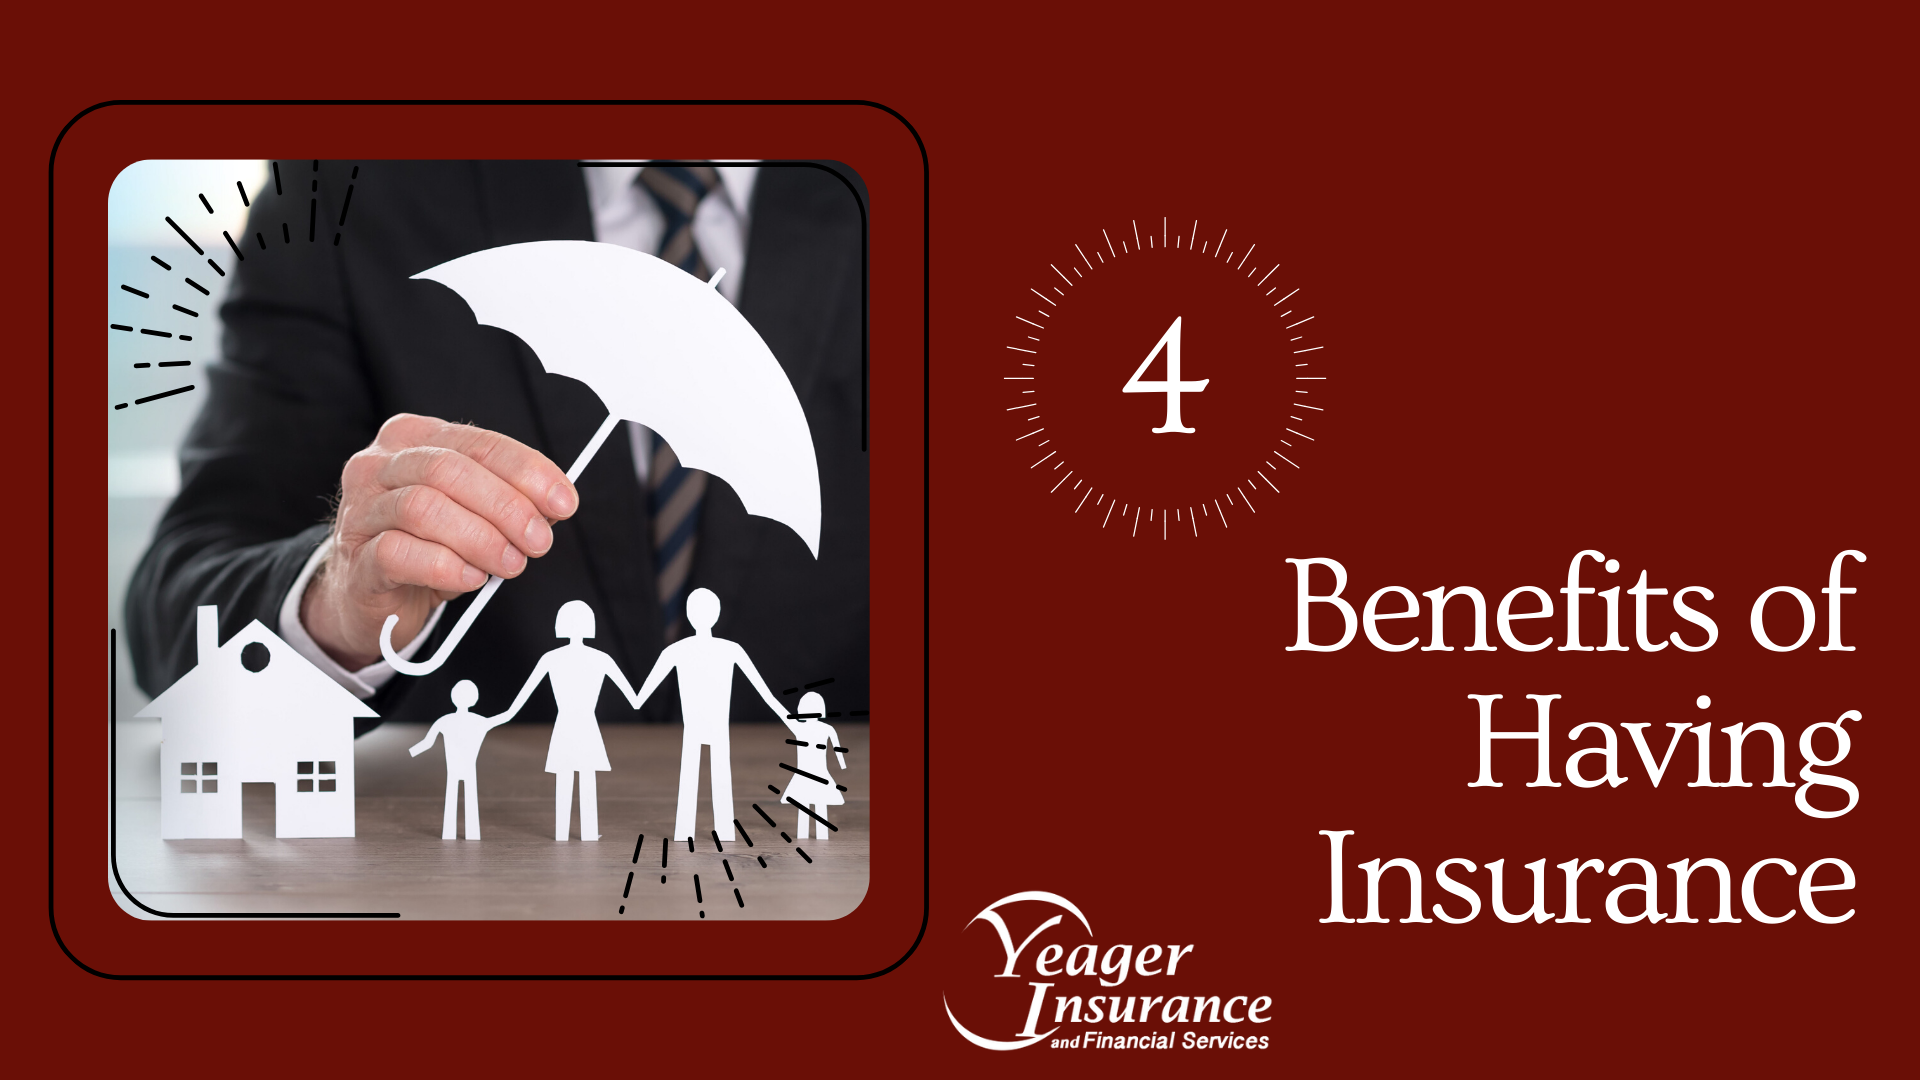 Four Benefits of Having Insurance - Yeager Insurance Blog